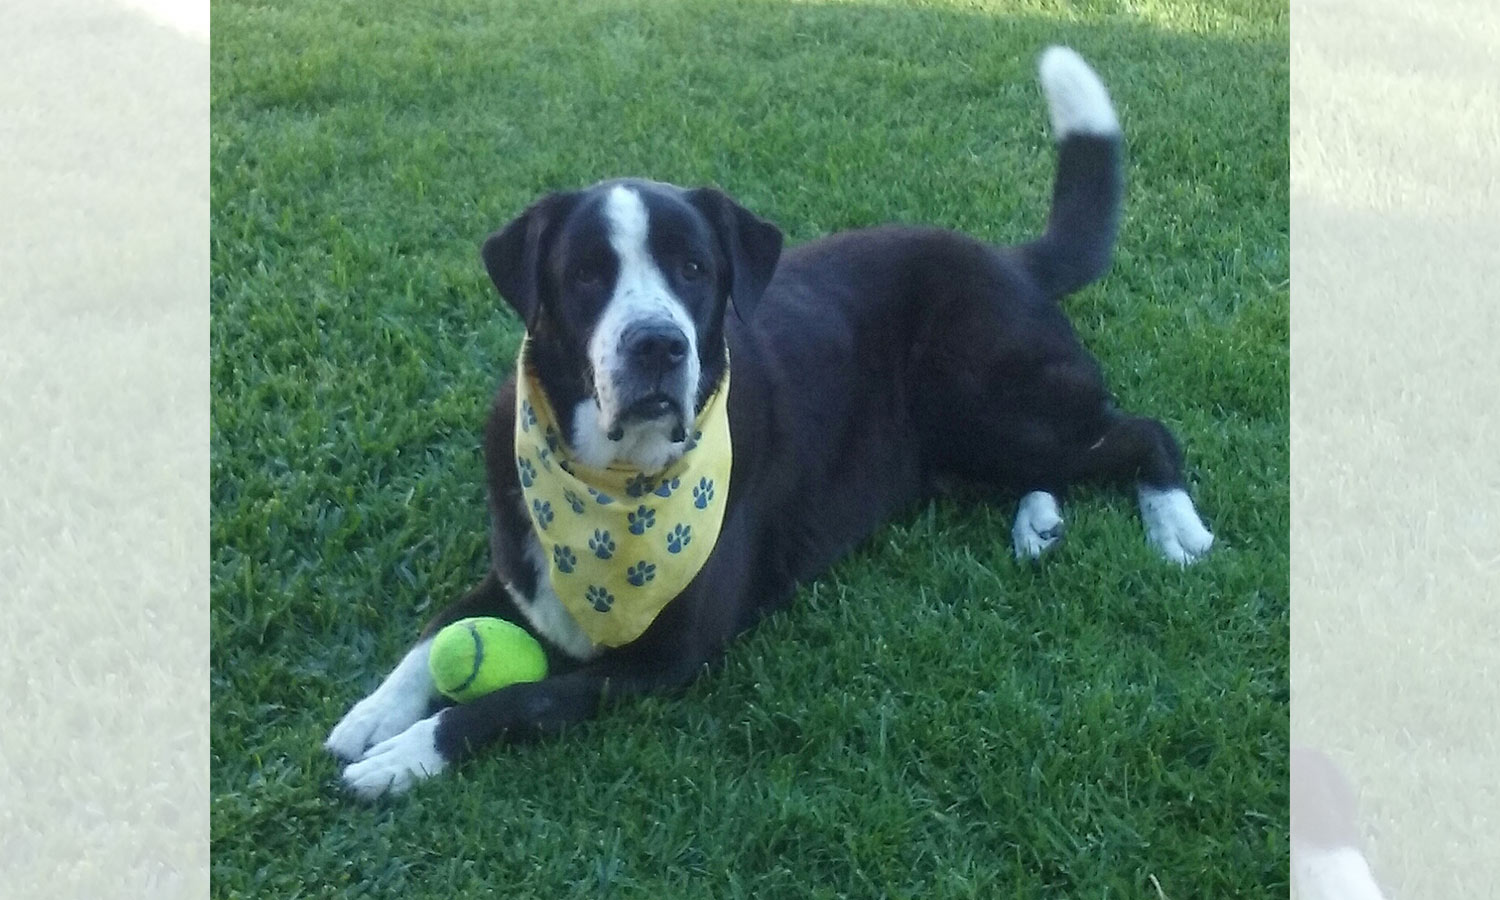 Meet Jackson, Melinda B.'s new furry family member! She adopted him recently; he is 1/2 lab and 1/2 St. Bernard. He's a real sweetie, Melinda says, and Jackson is already a certified therapy dog.